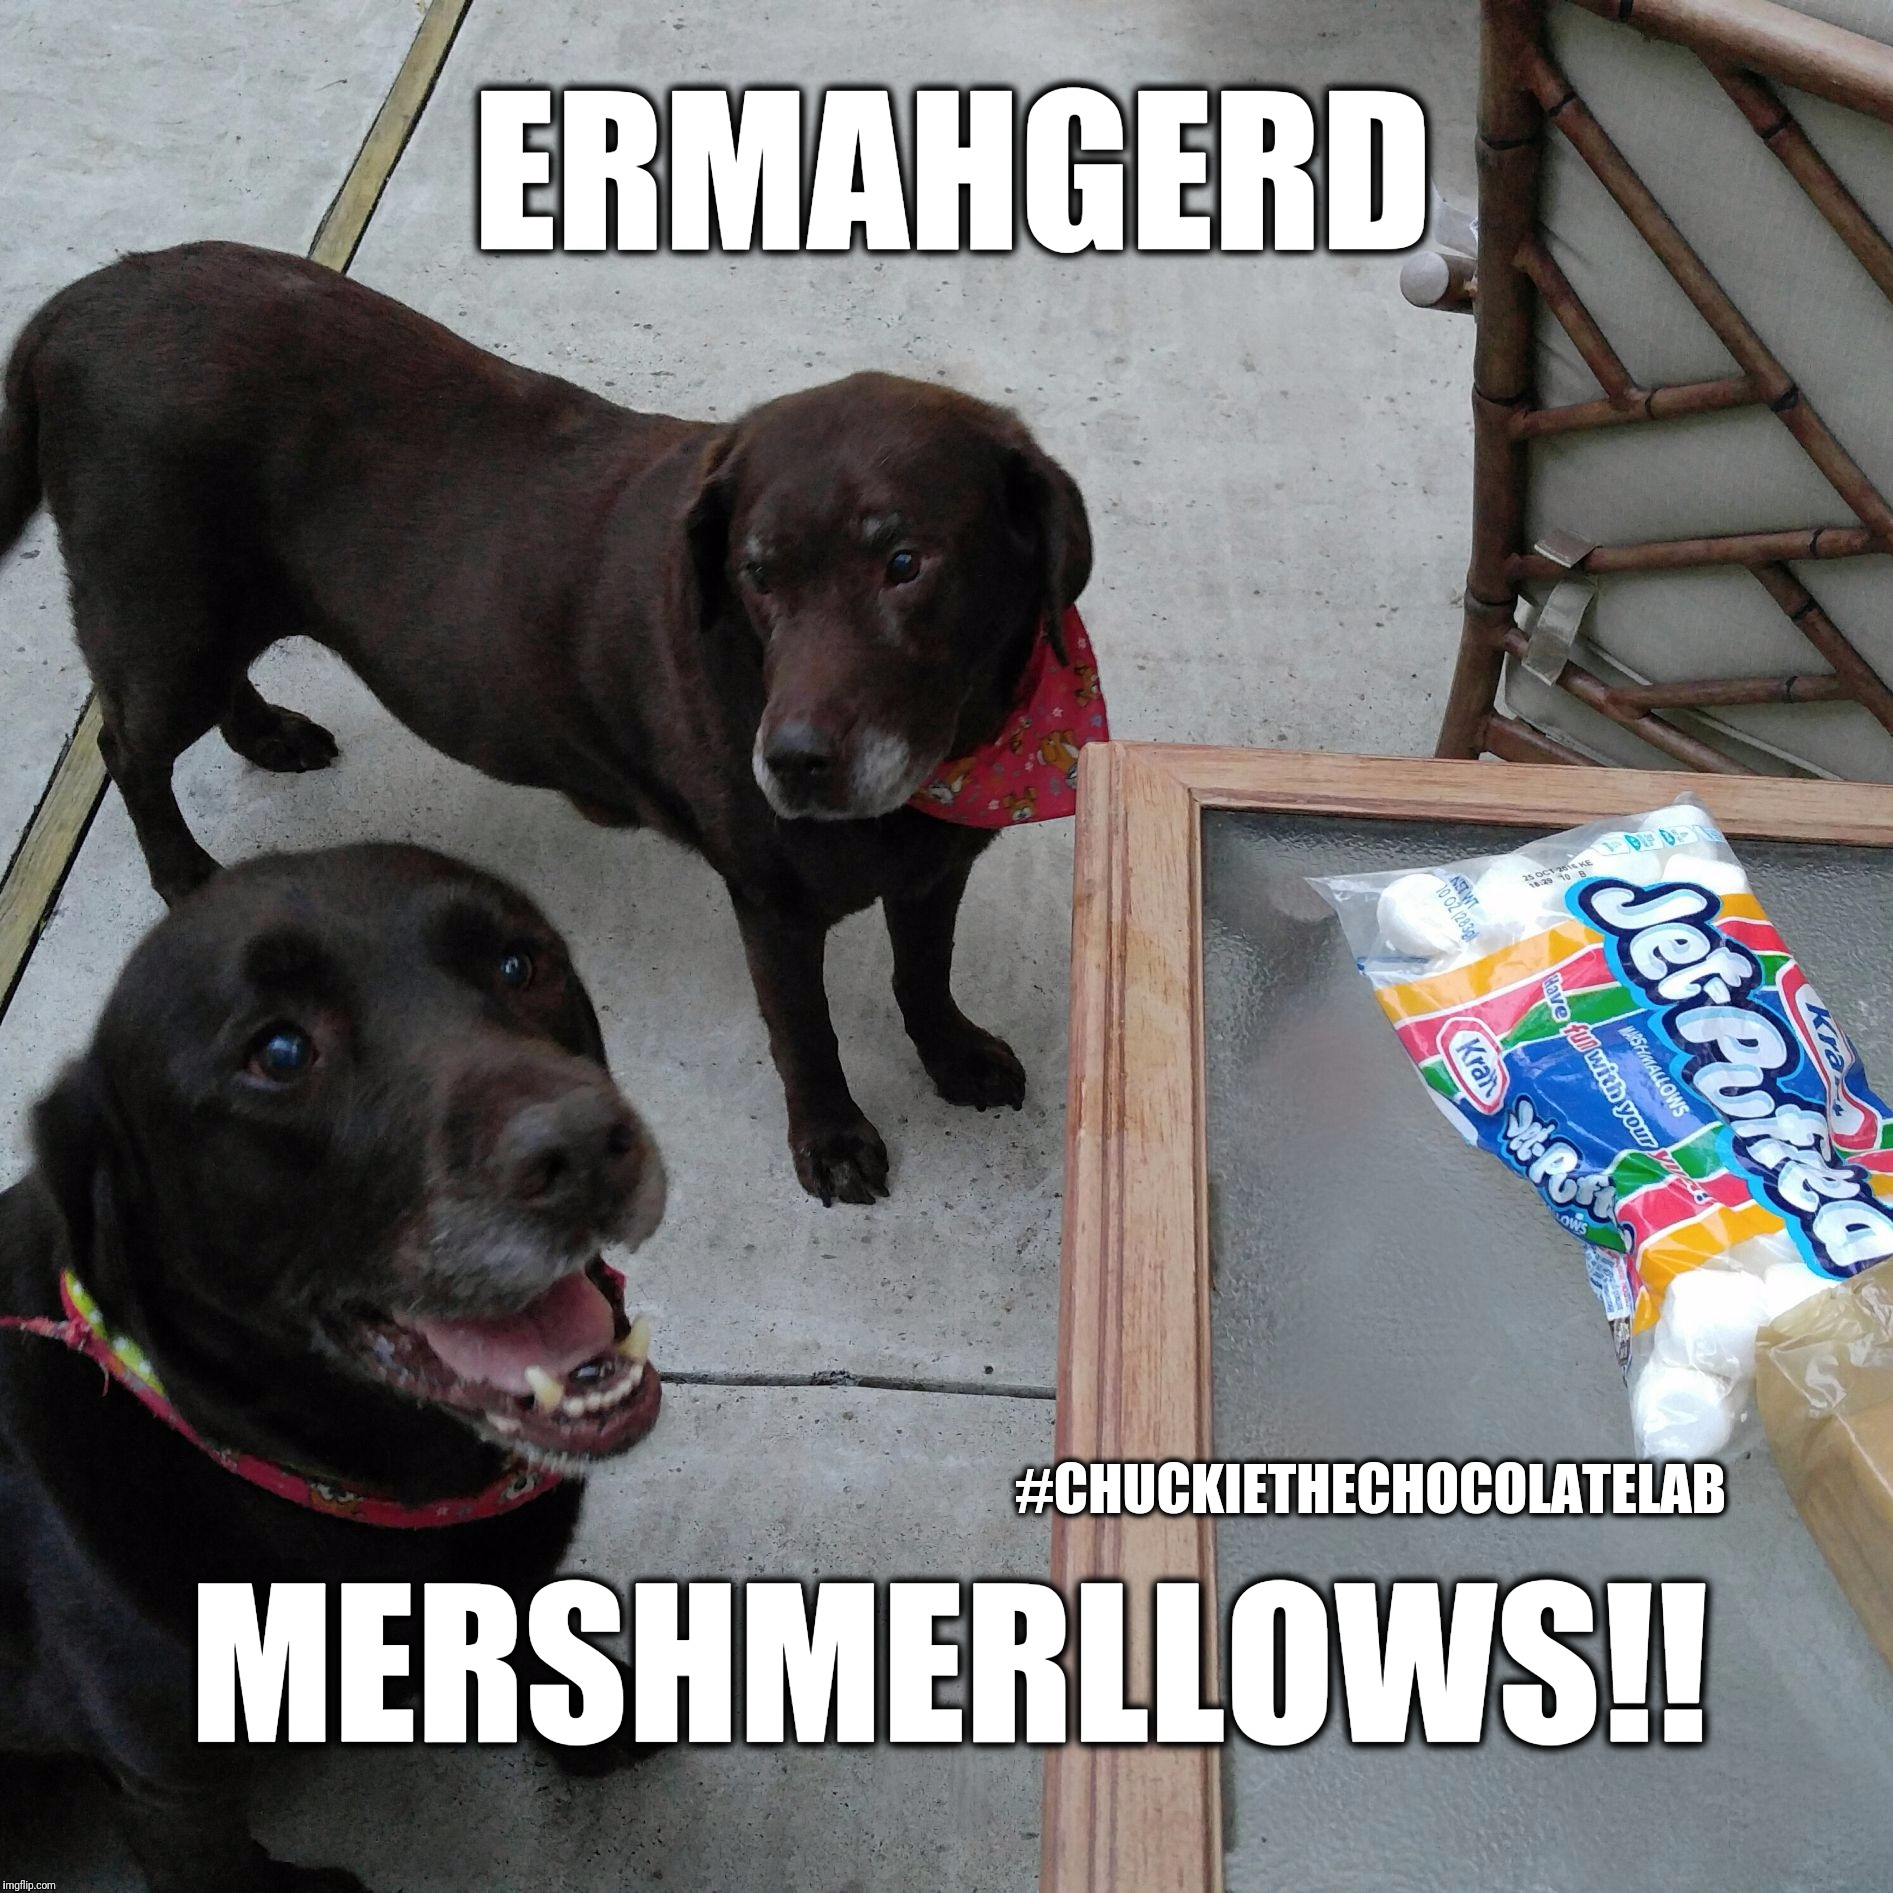 Ermahgerd Mershmerllows!  | ERMAHGERD #CHUCKIETHECHOCOLATELAB MERSHMERLLOWS!! | image tagged in chuckie the chocolate lab marshmallows,ermahgerd mershmerllows,smores,dogs,funny,ermahgerd | made w/ Imgflip meme maker